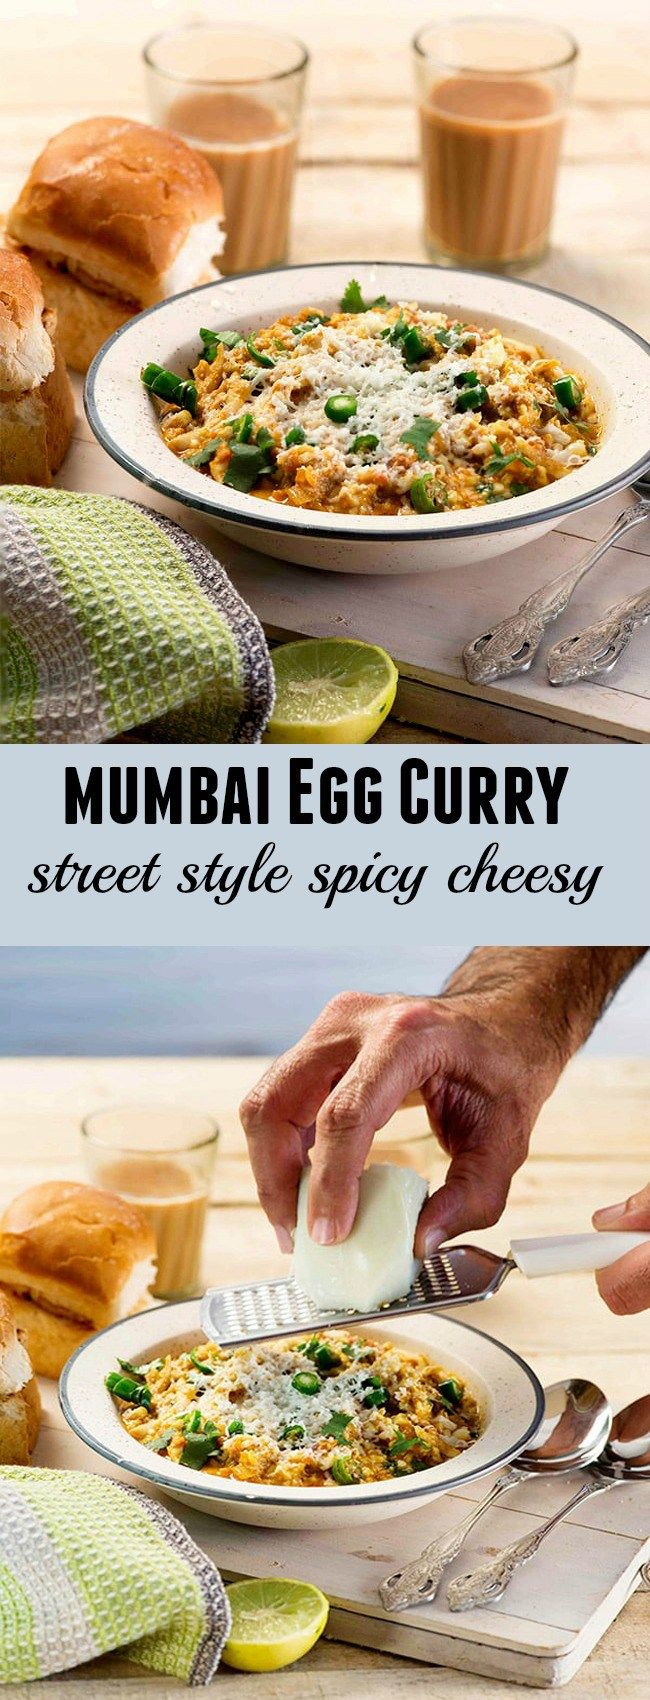 769 best desi breakfast and snacks images on pinterest cooking mumbai style egg curry street style anda curry curry recipesveg recipesindian forumfinder Images